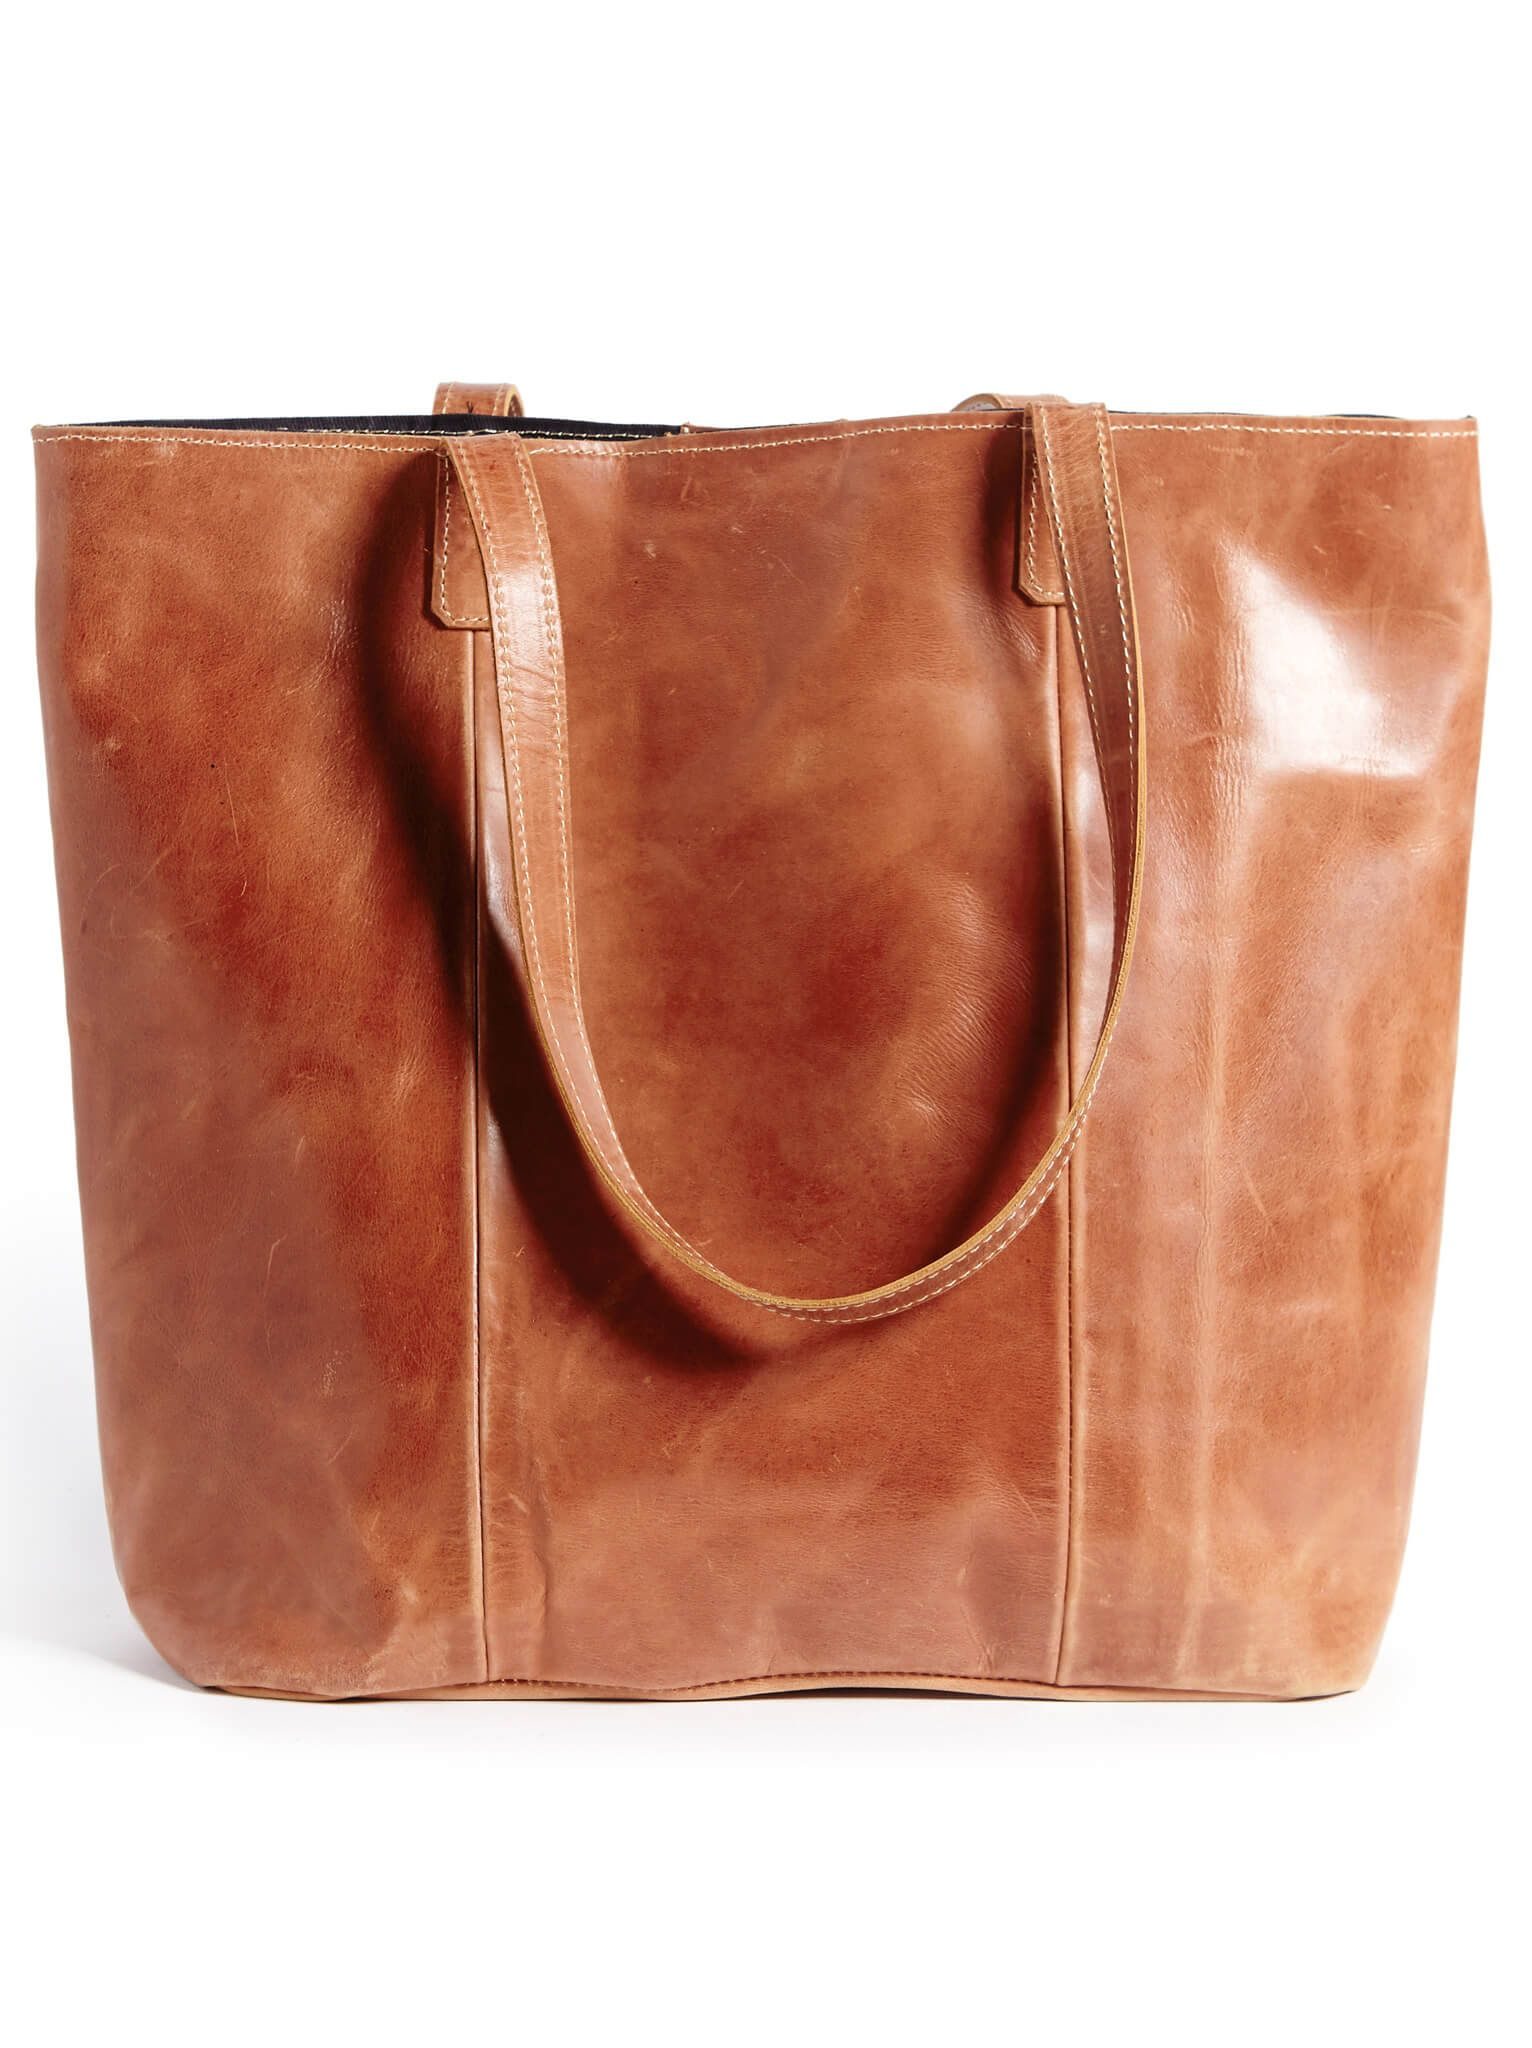 4ed5d0de4b1681 Zemen Tote | Bags | Bags, Leather, Knitted bags